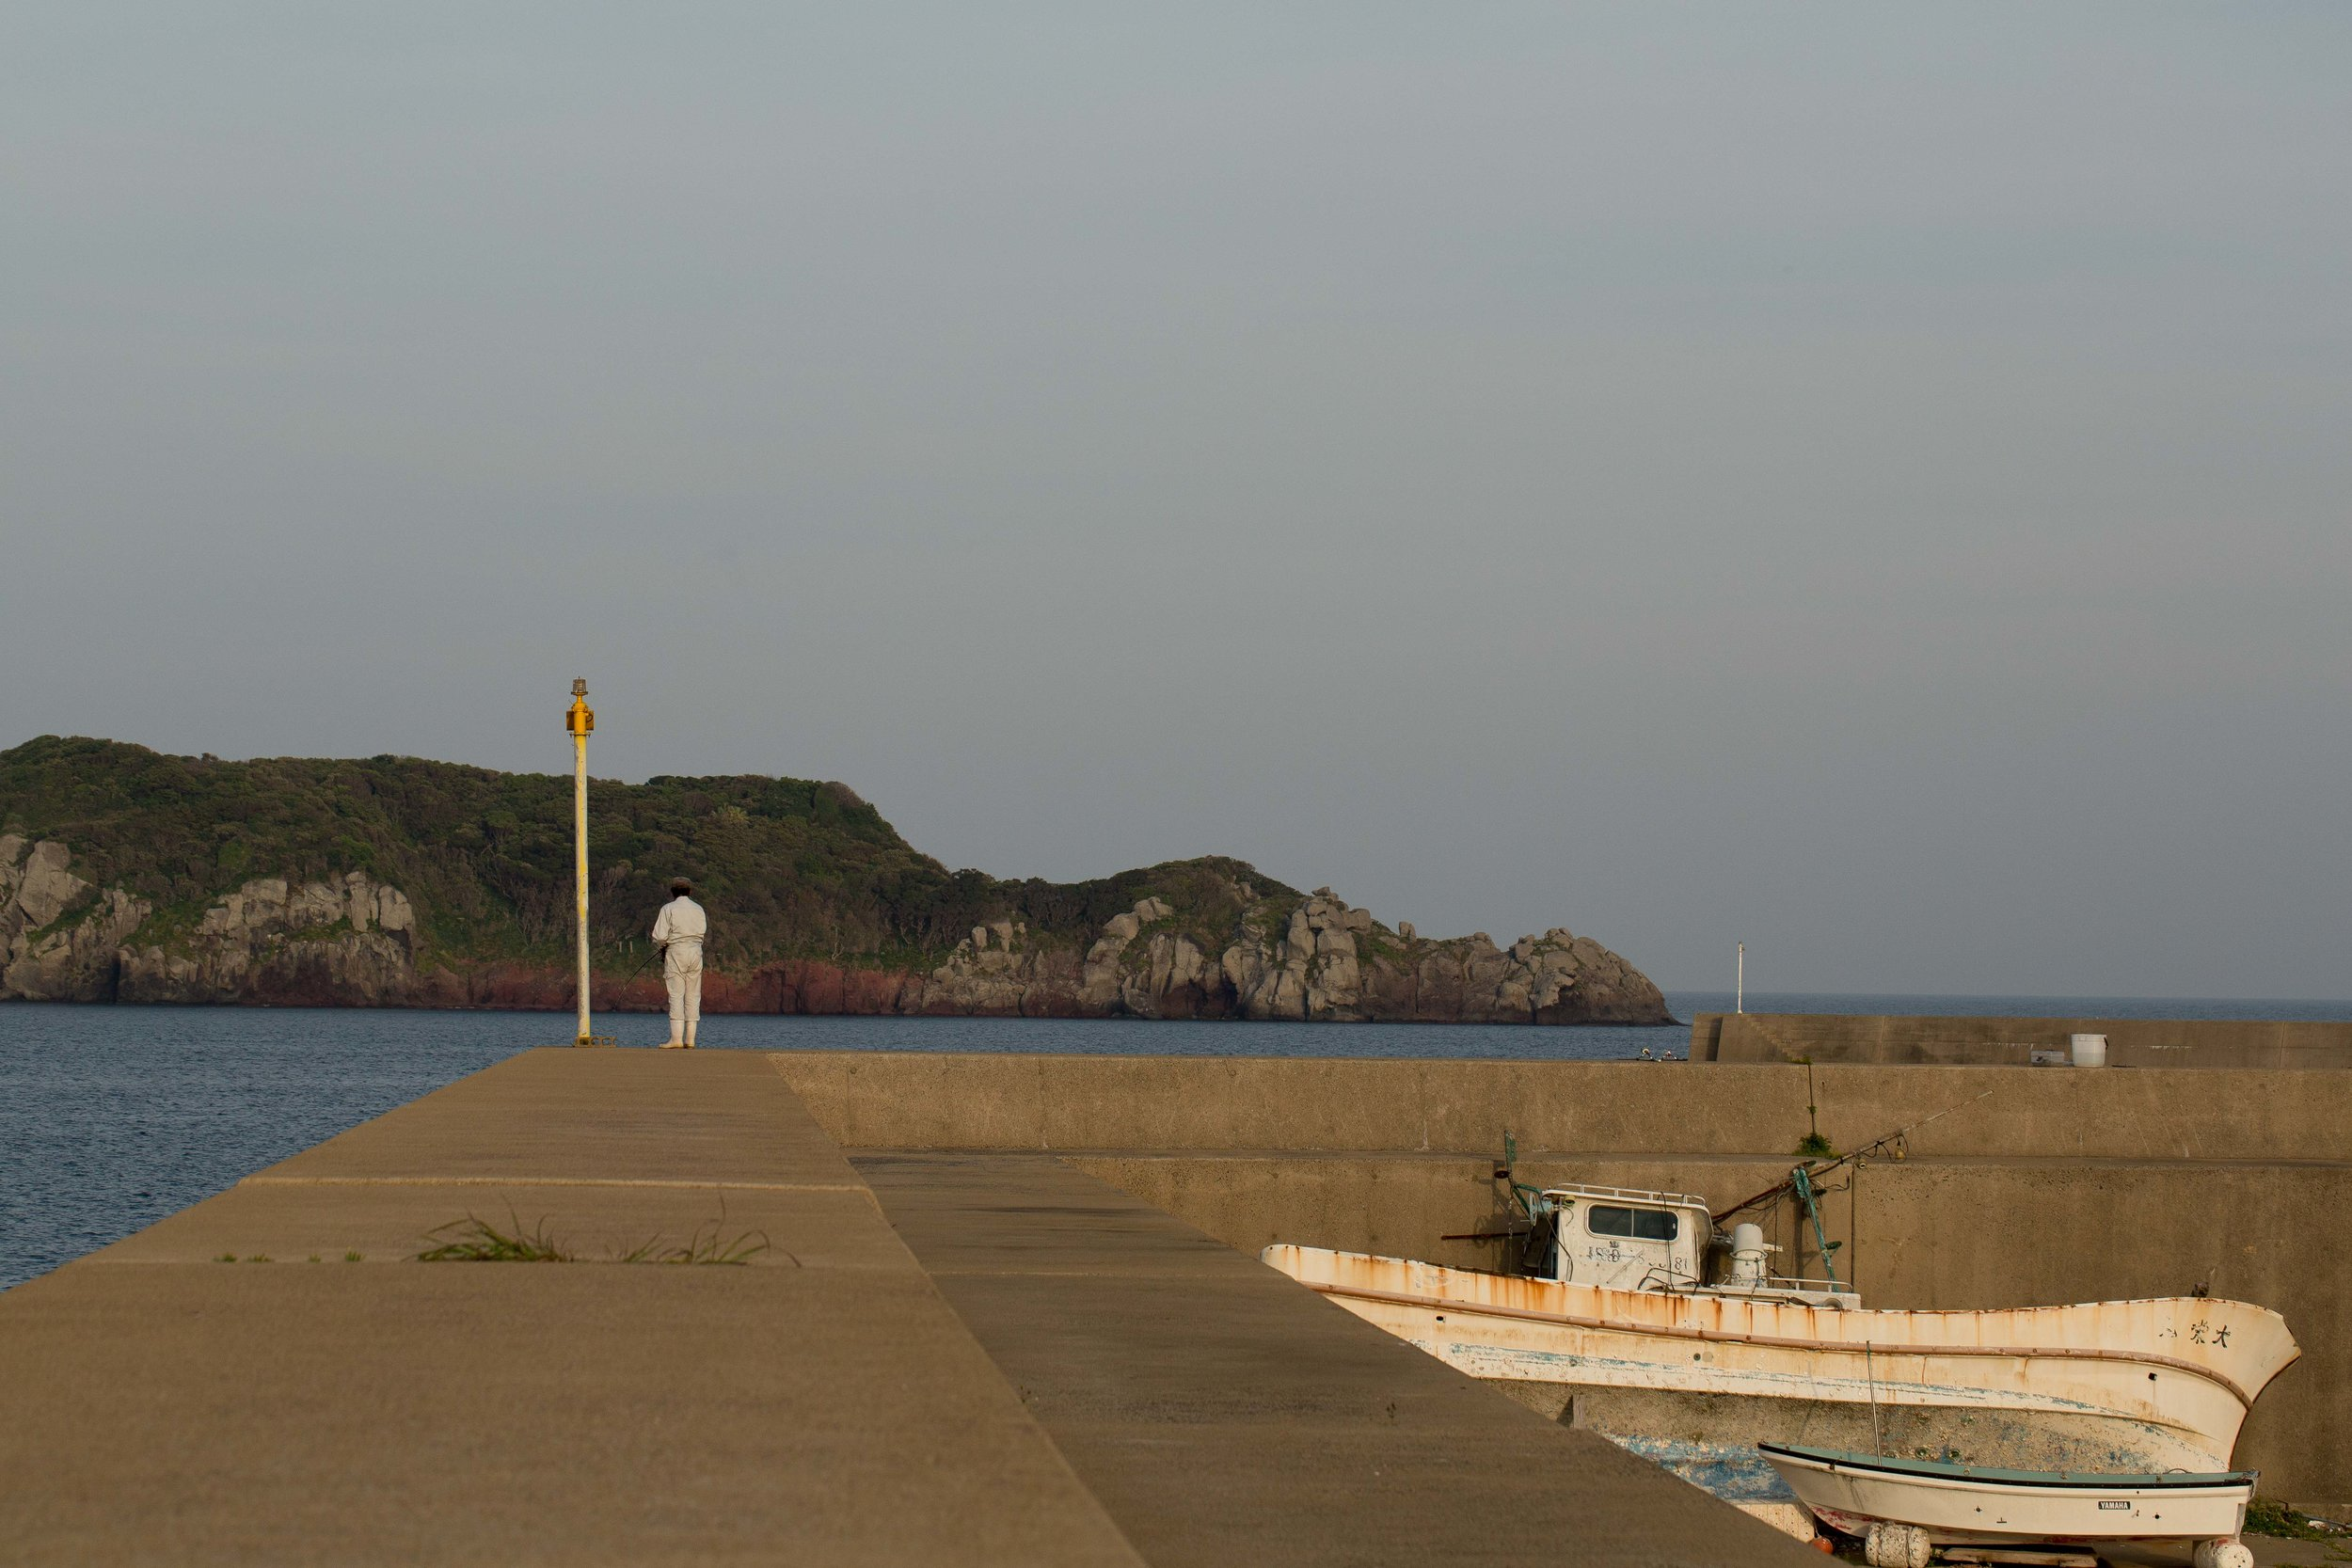 The seawall that shelters the Ukeshima marina